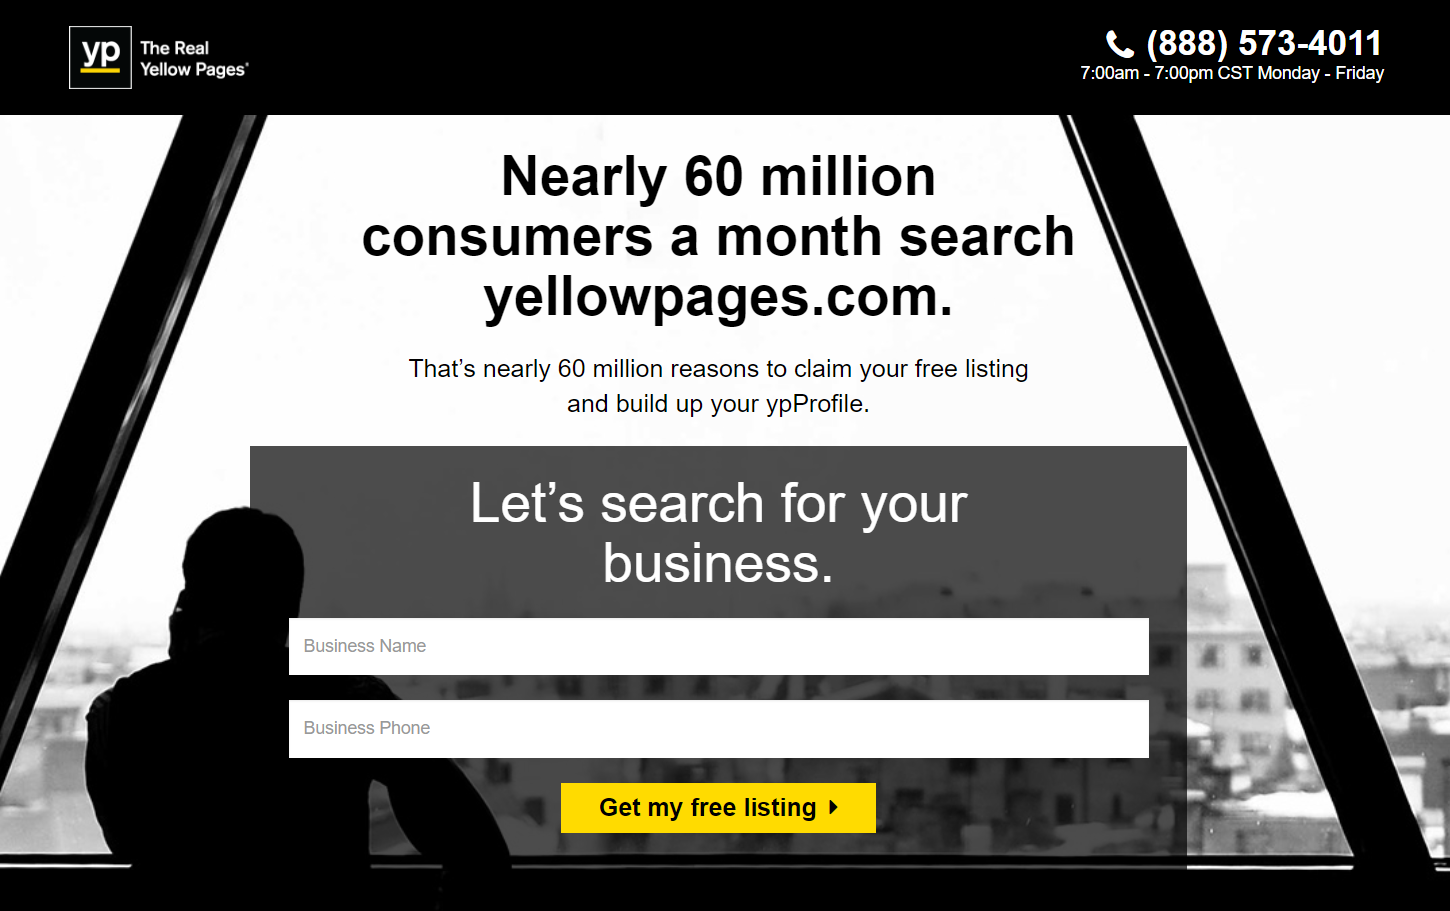 Yellow Pages landing page inspiration